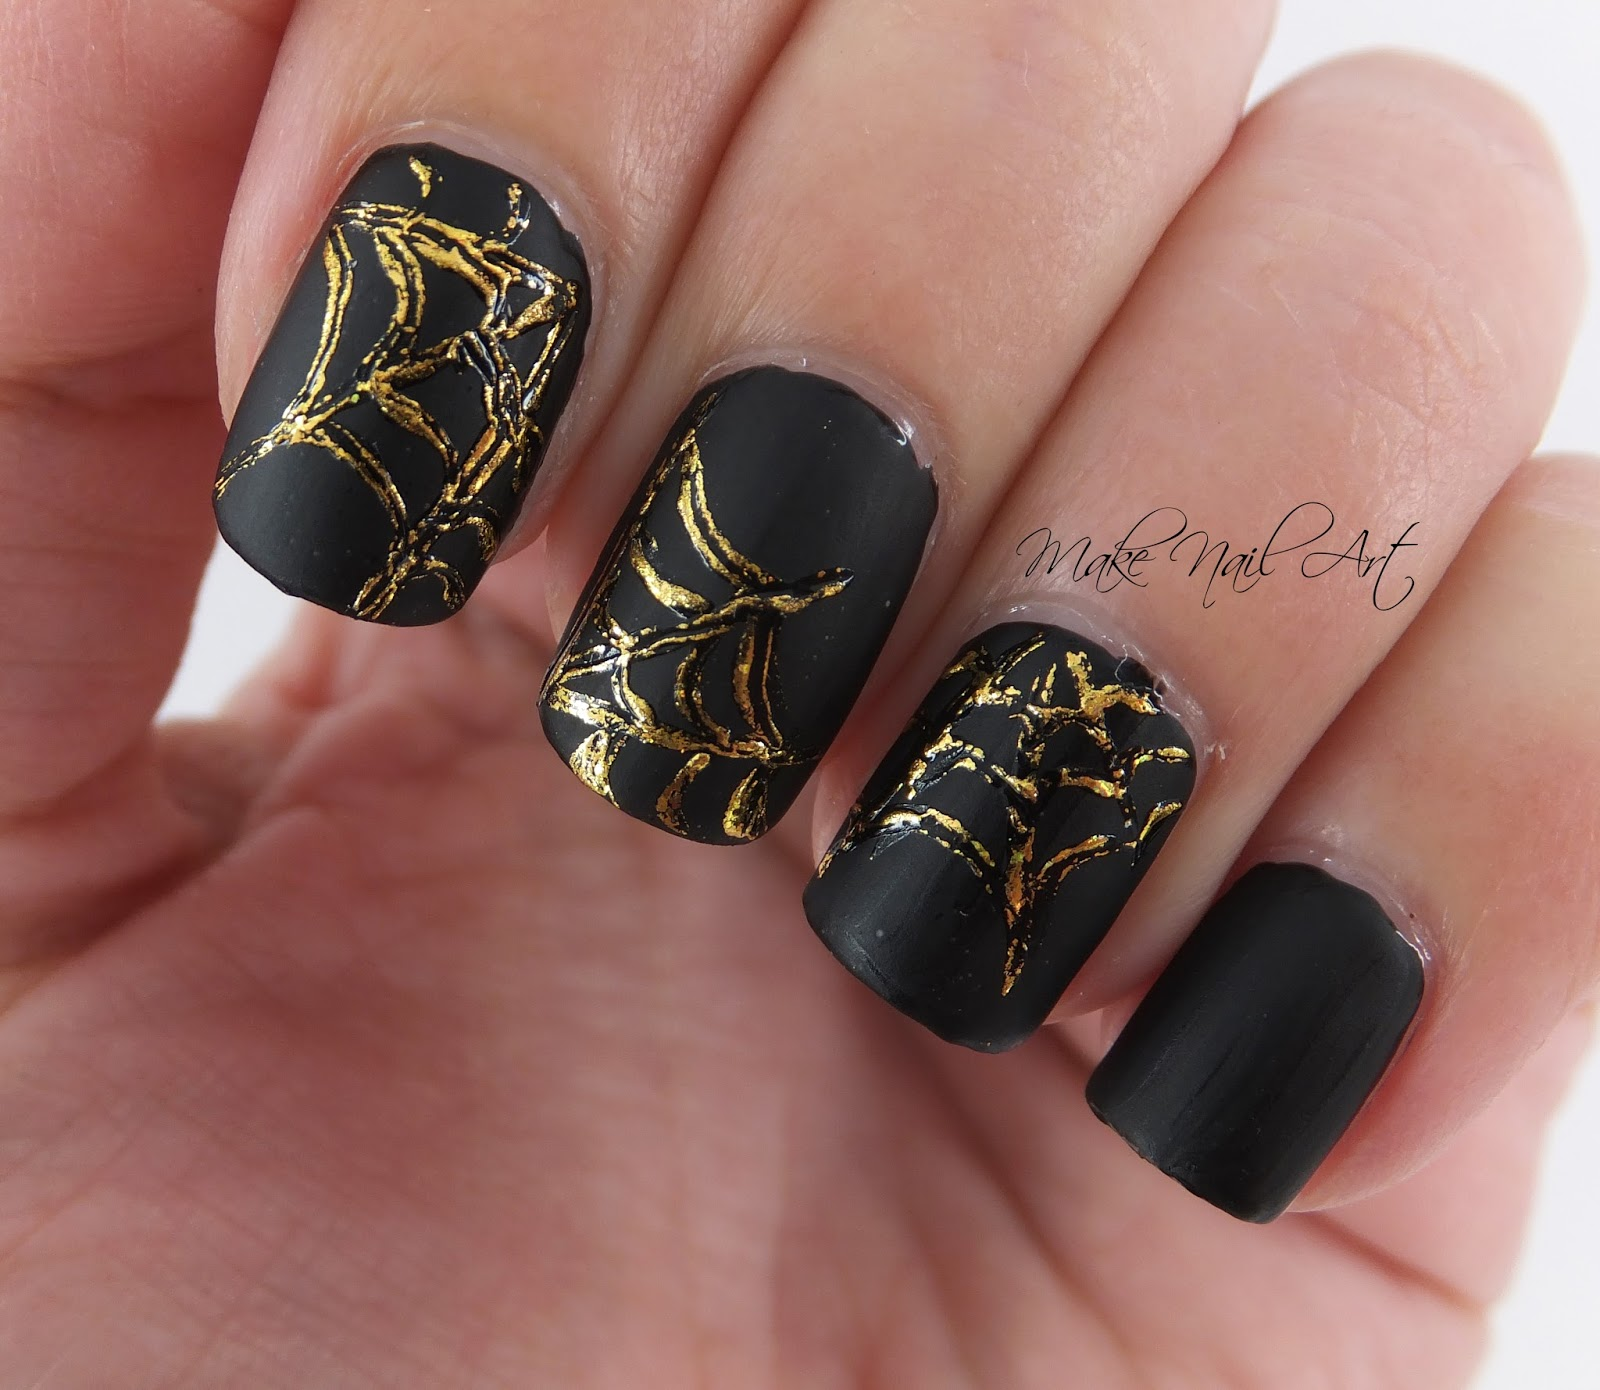 Make Nail Art: Gold Foil Spider Web Halloween Nail Art Design Tutorial